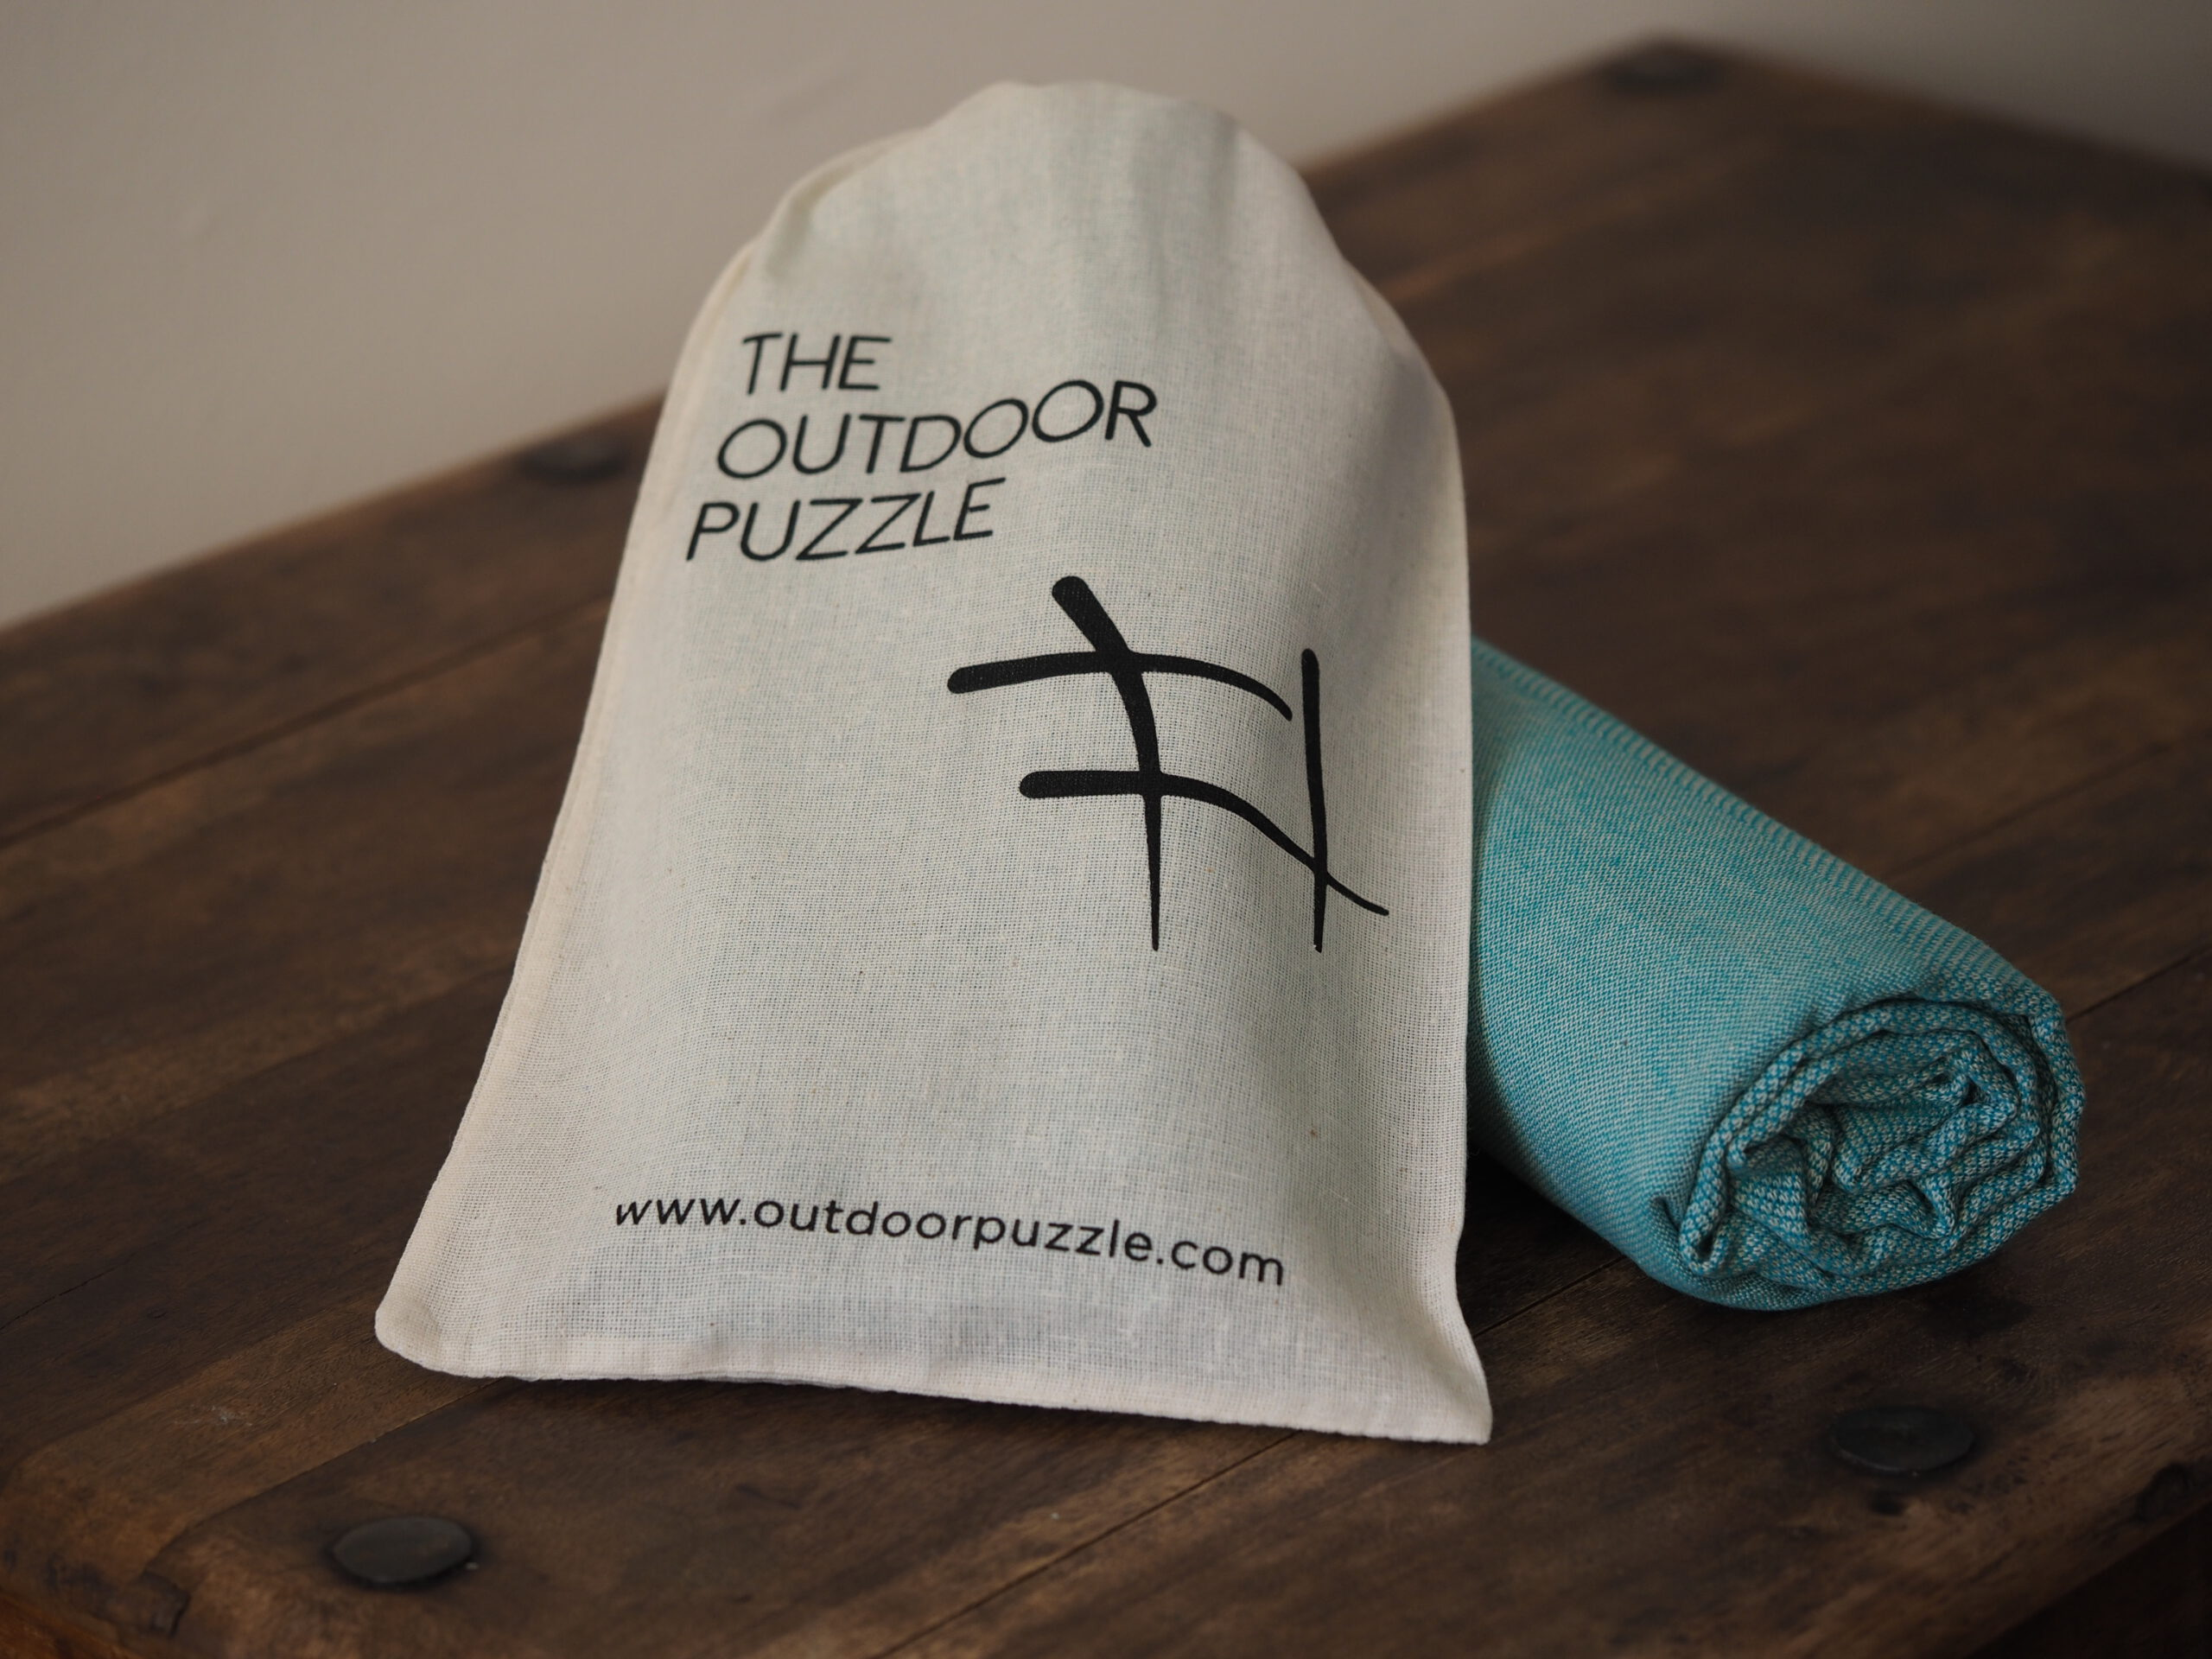 The Outdoor Puzzle